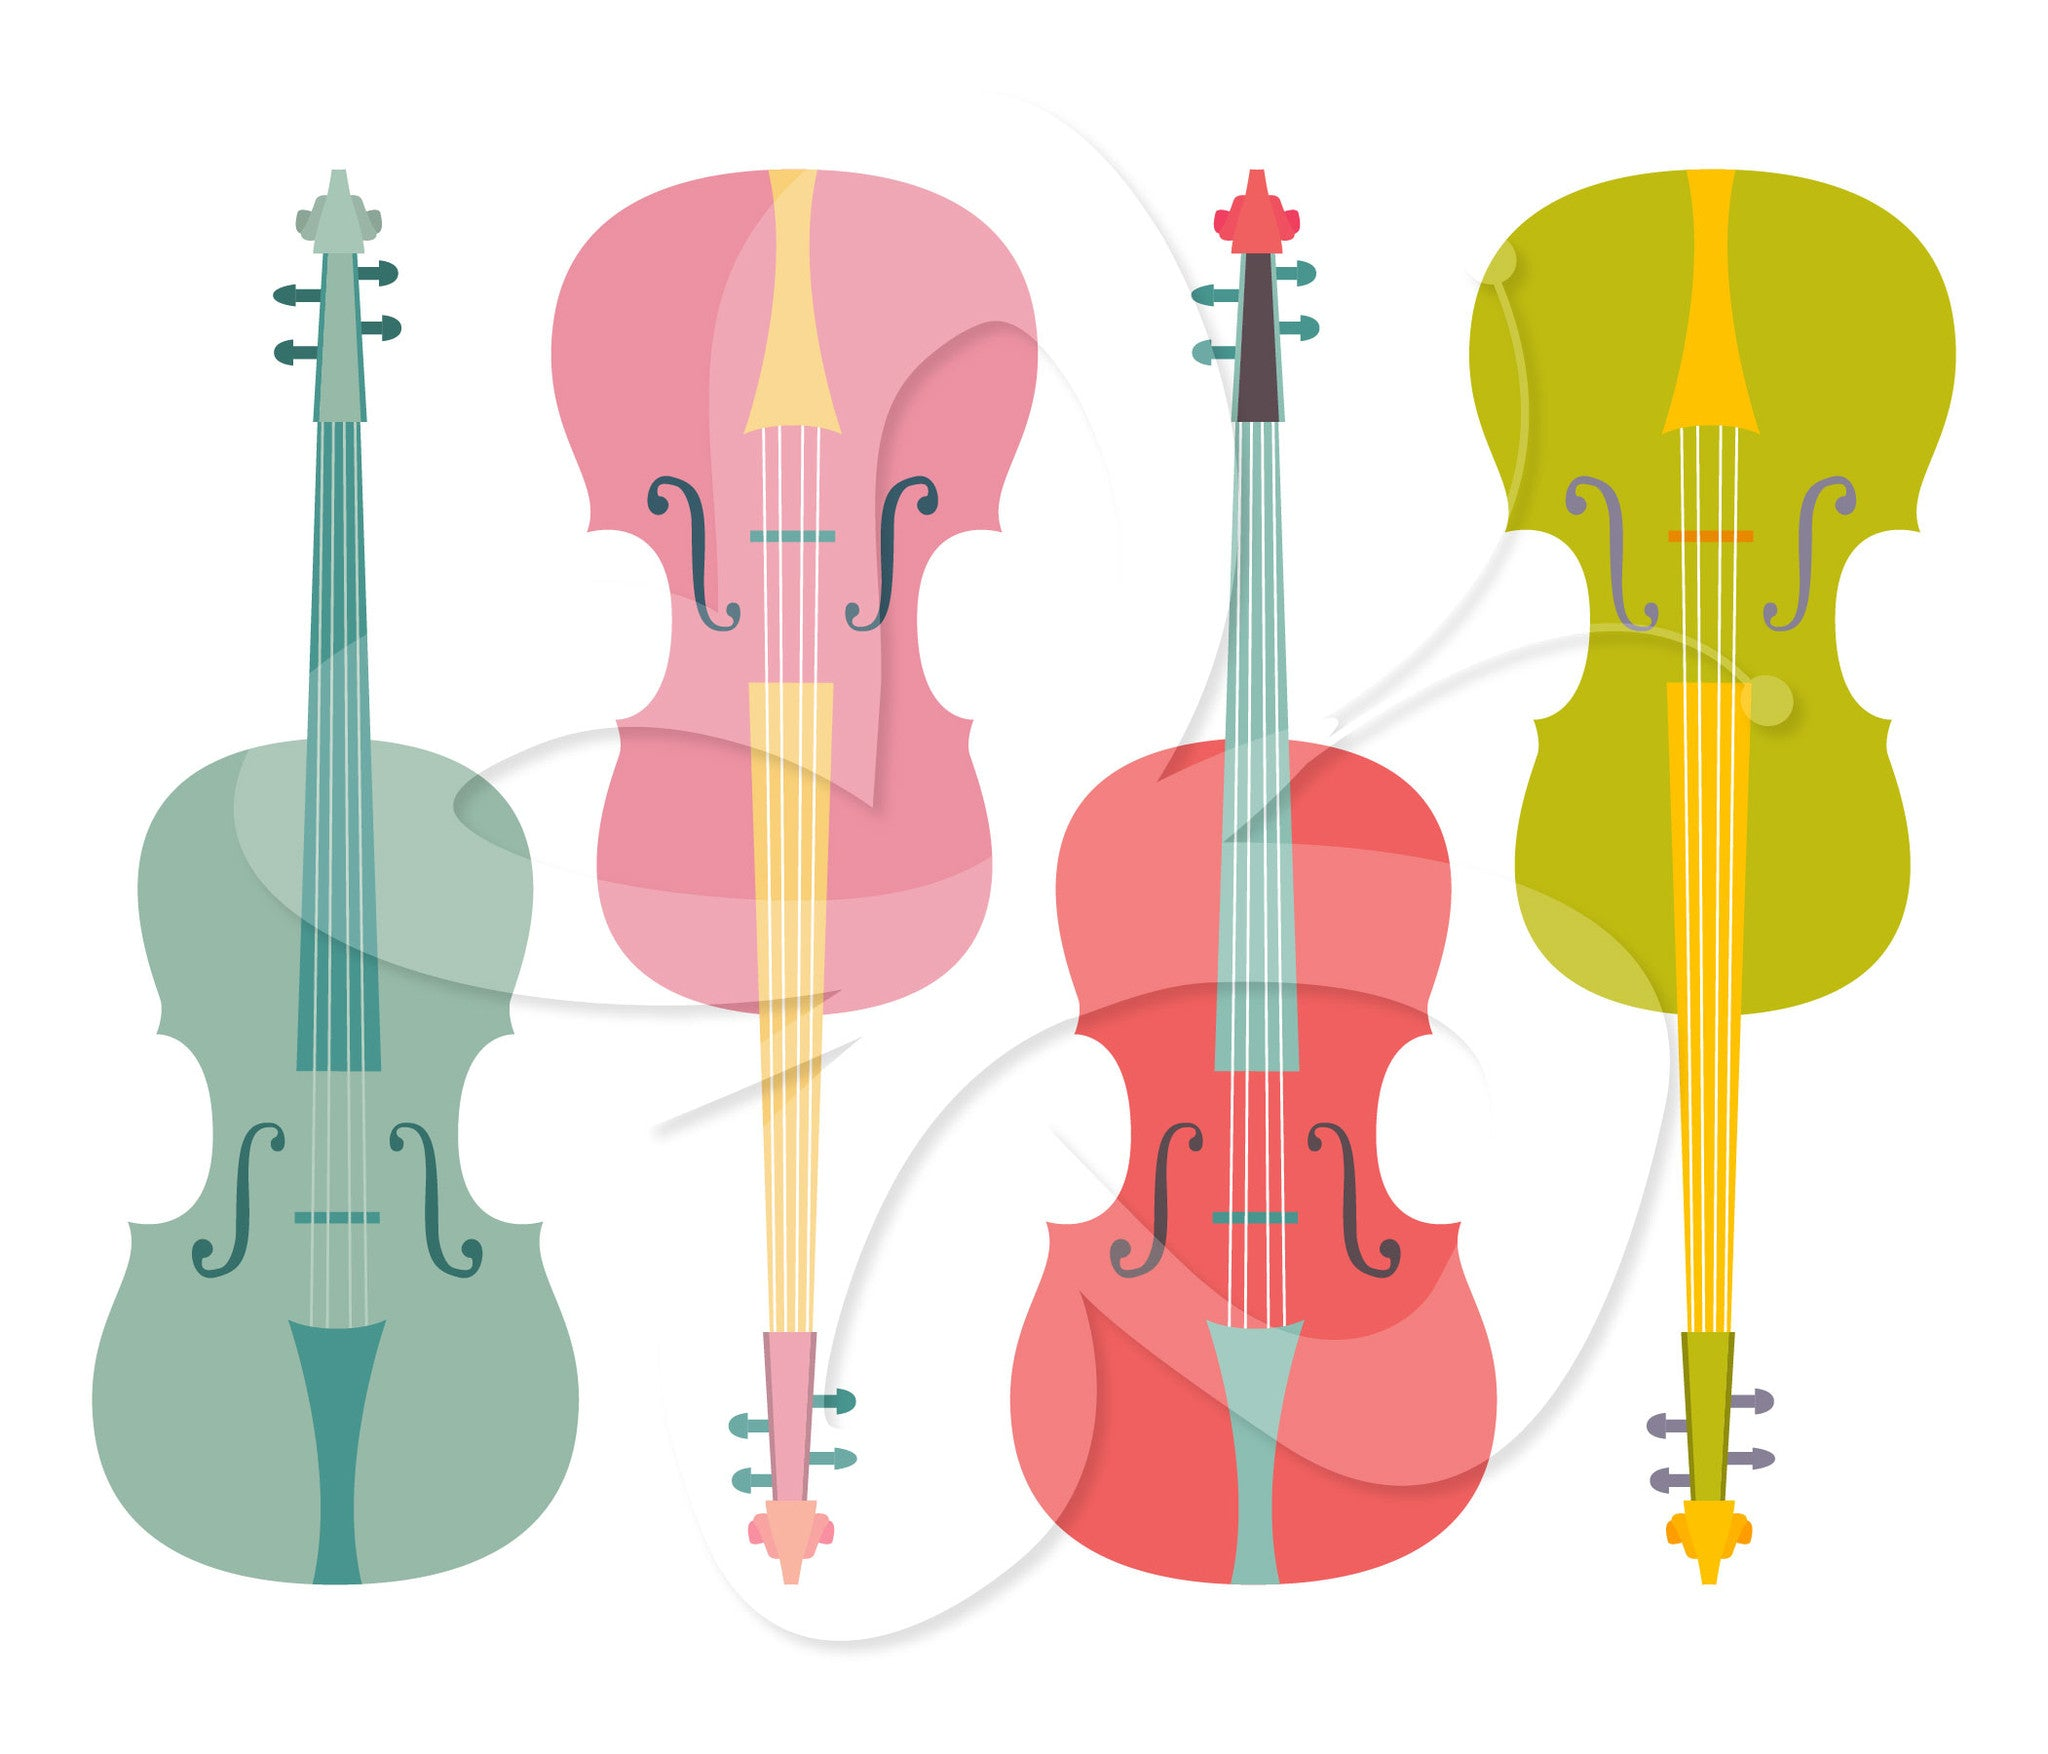 Violin lesson (1 private session) - Each session for 30 min